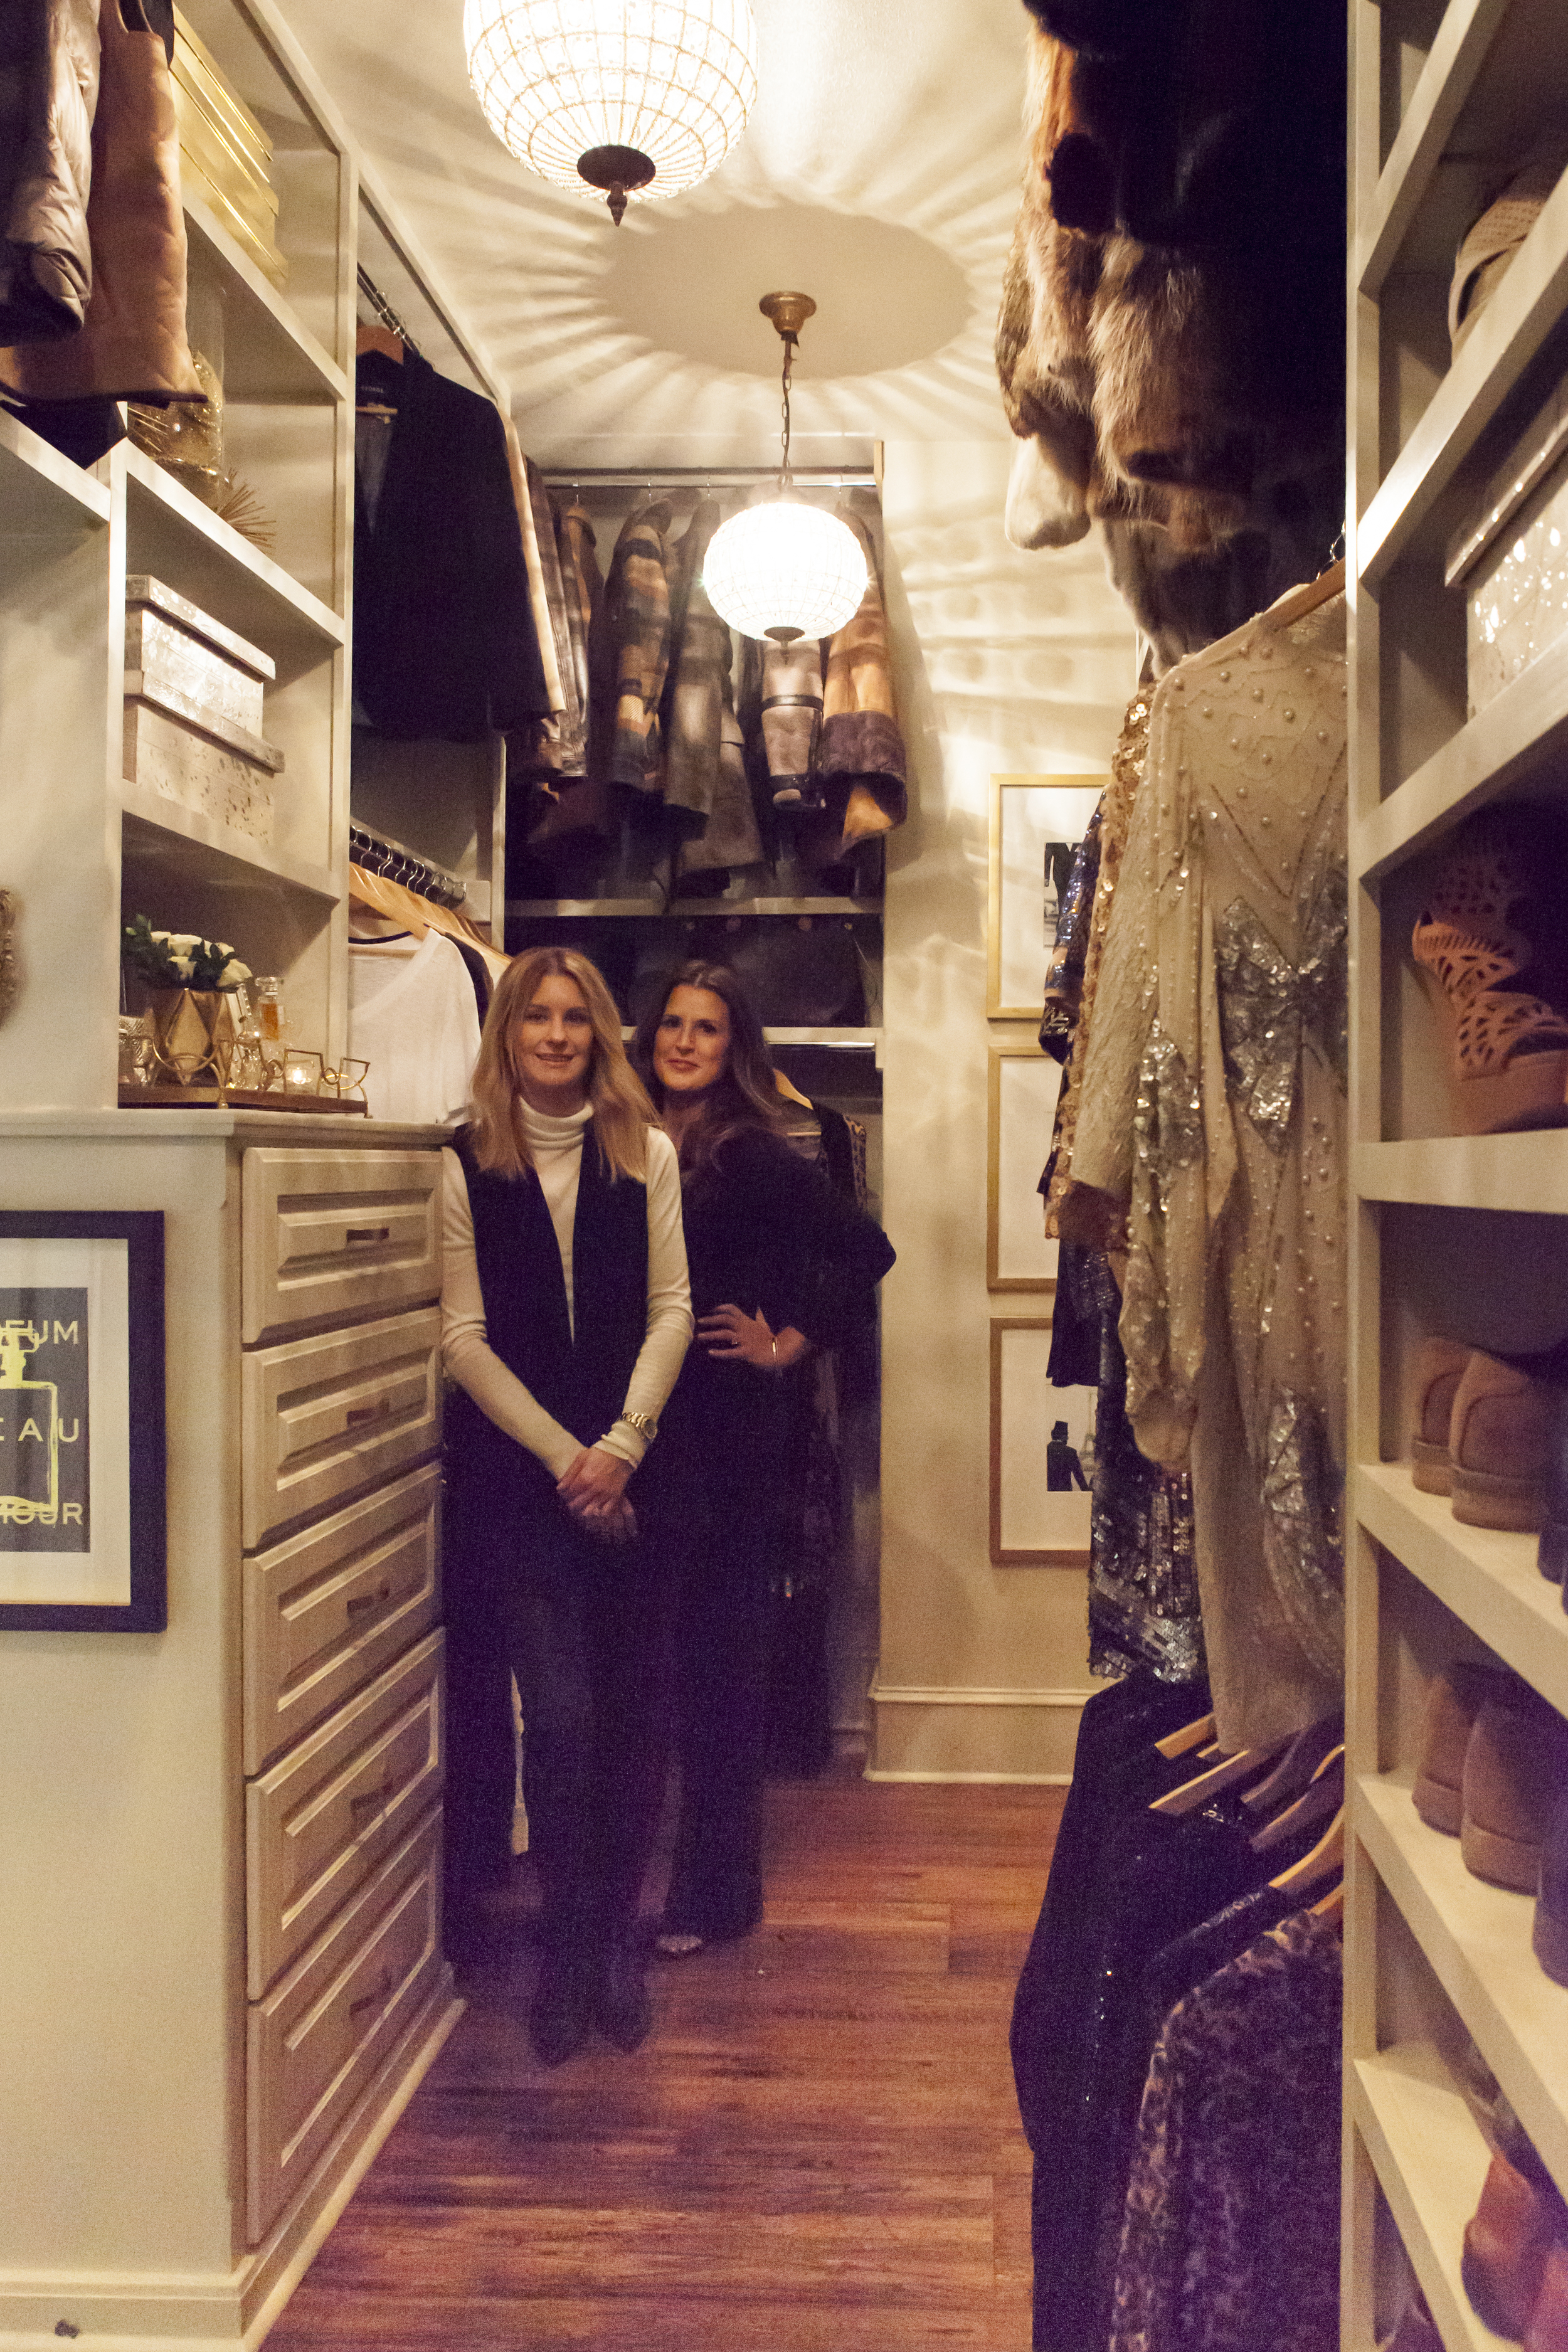 Ashley and Carrie in her newly organized closet.